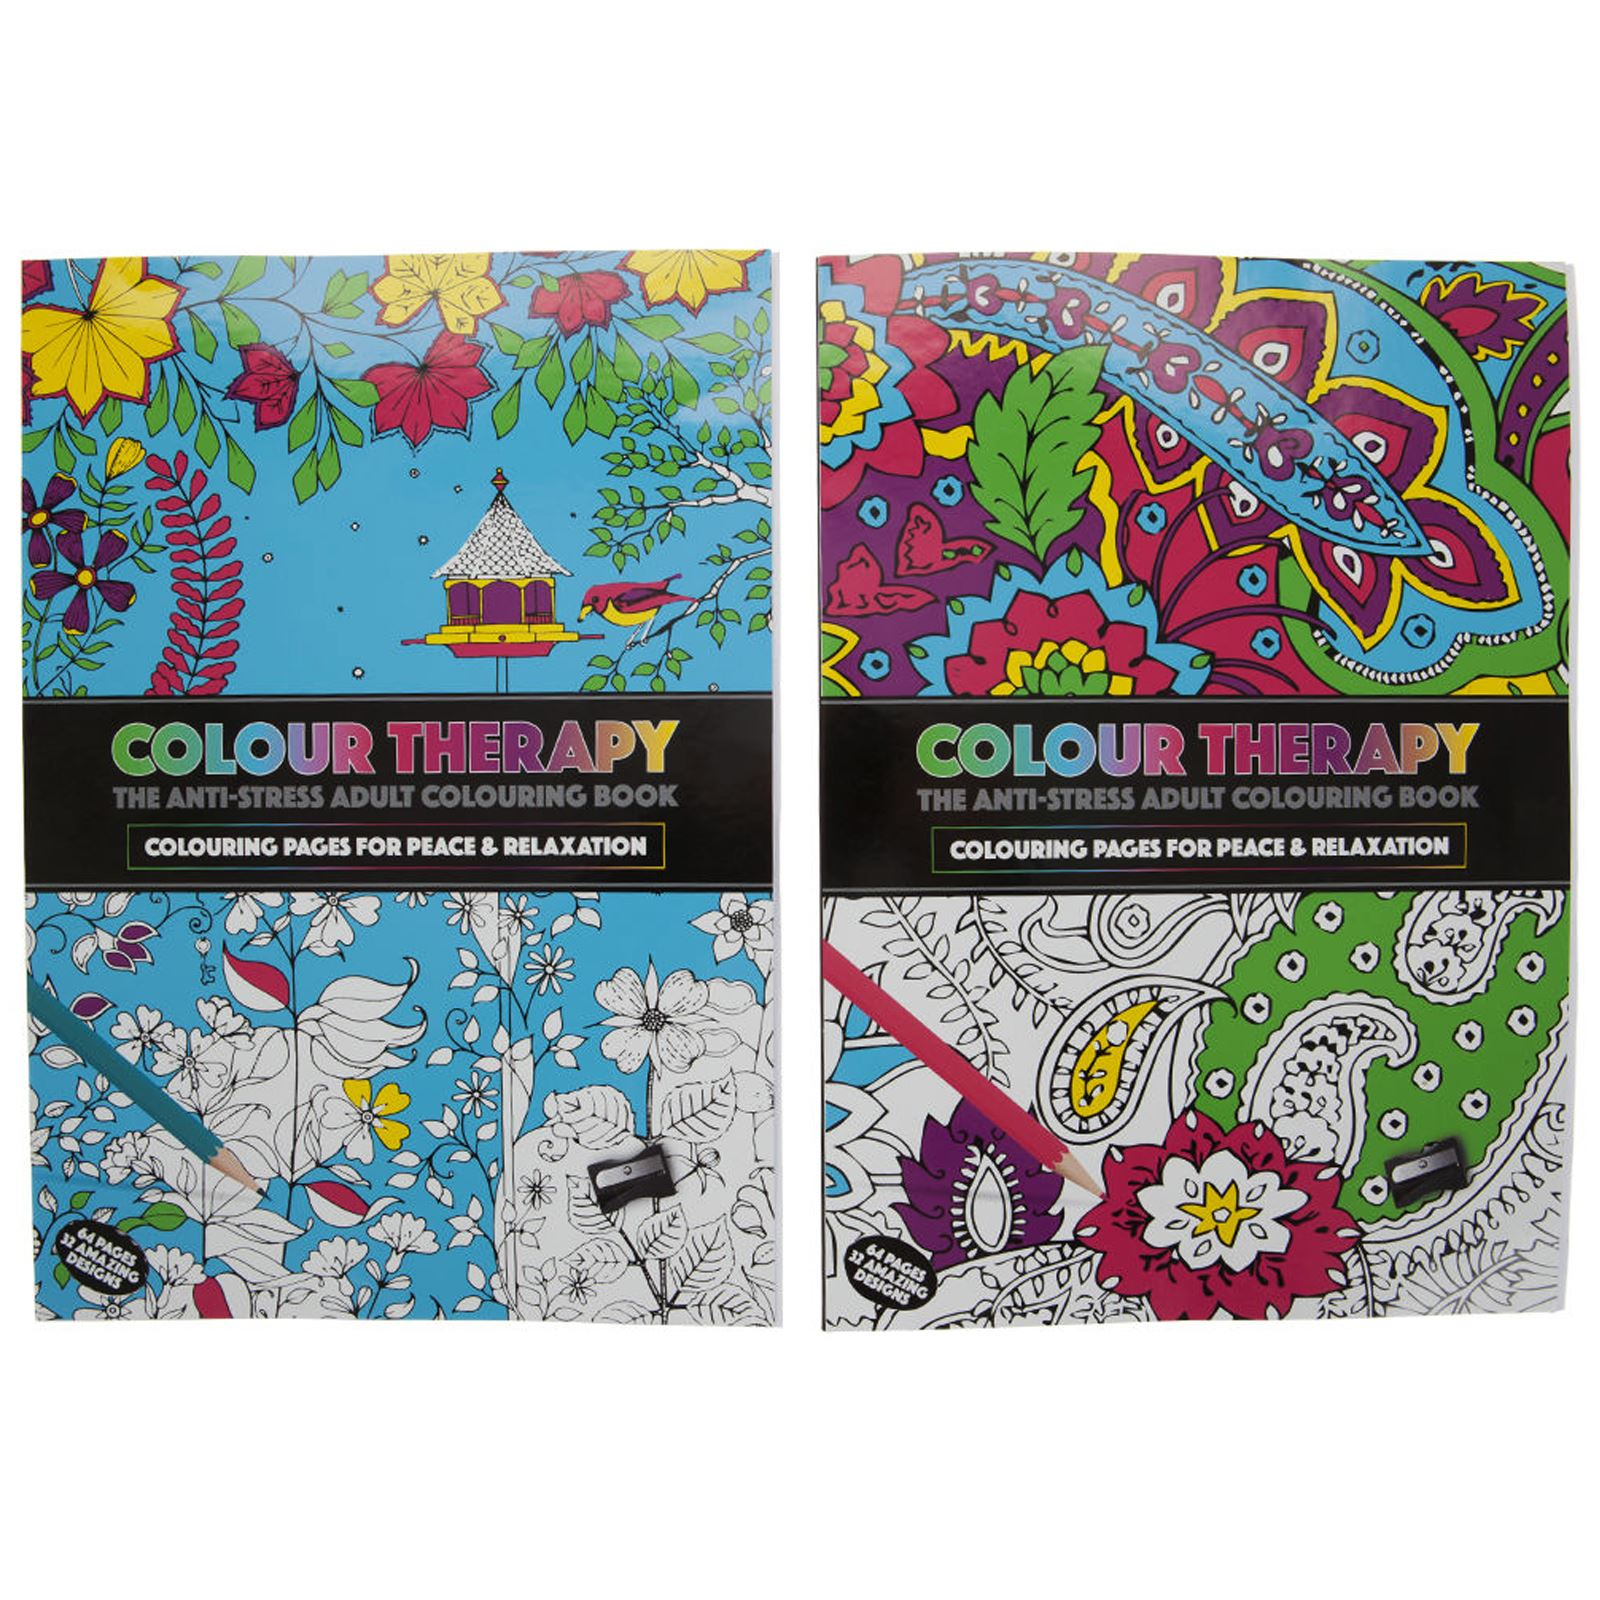 Adult coloring books ebay - New Anti Stress Colour Therapy Colouring Books Pencils